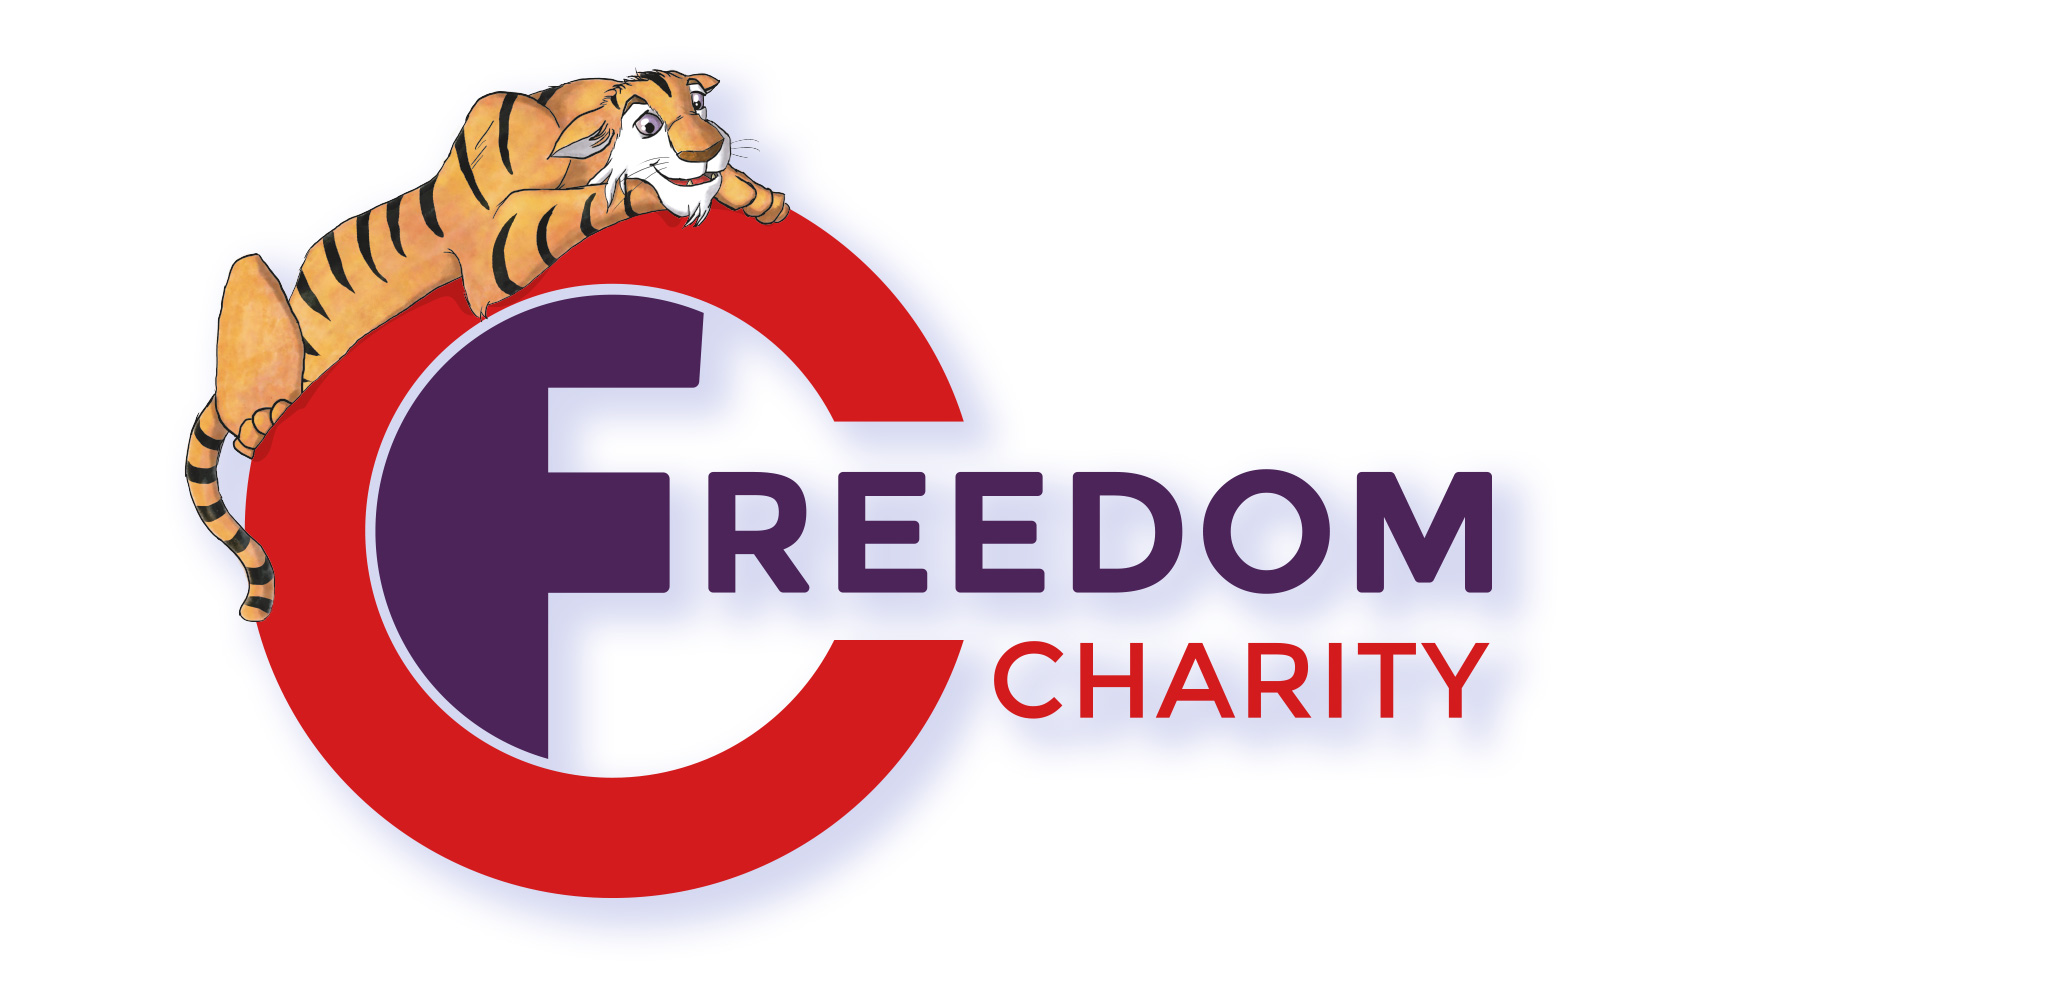 FREEDOM CHARITY